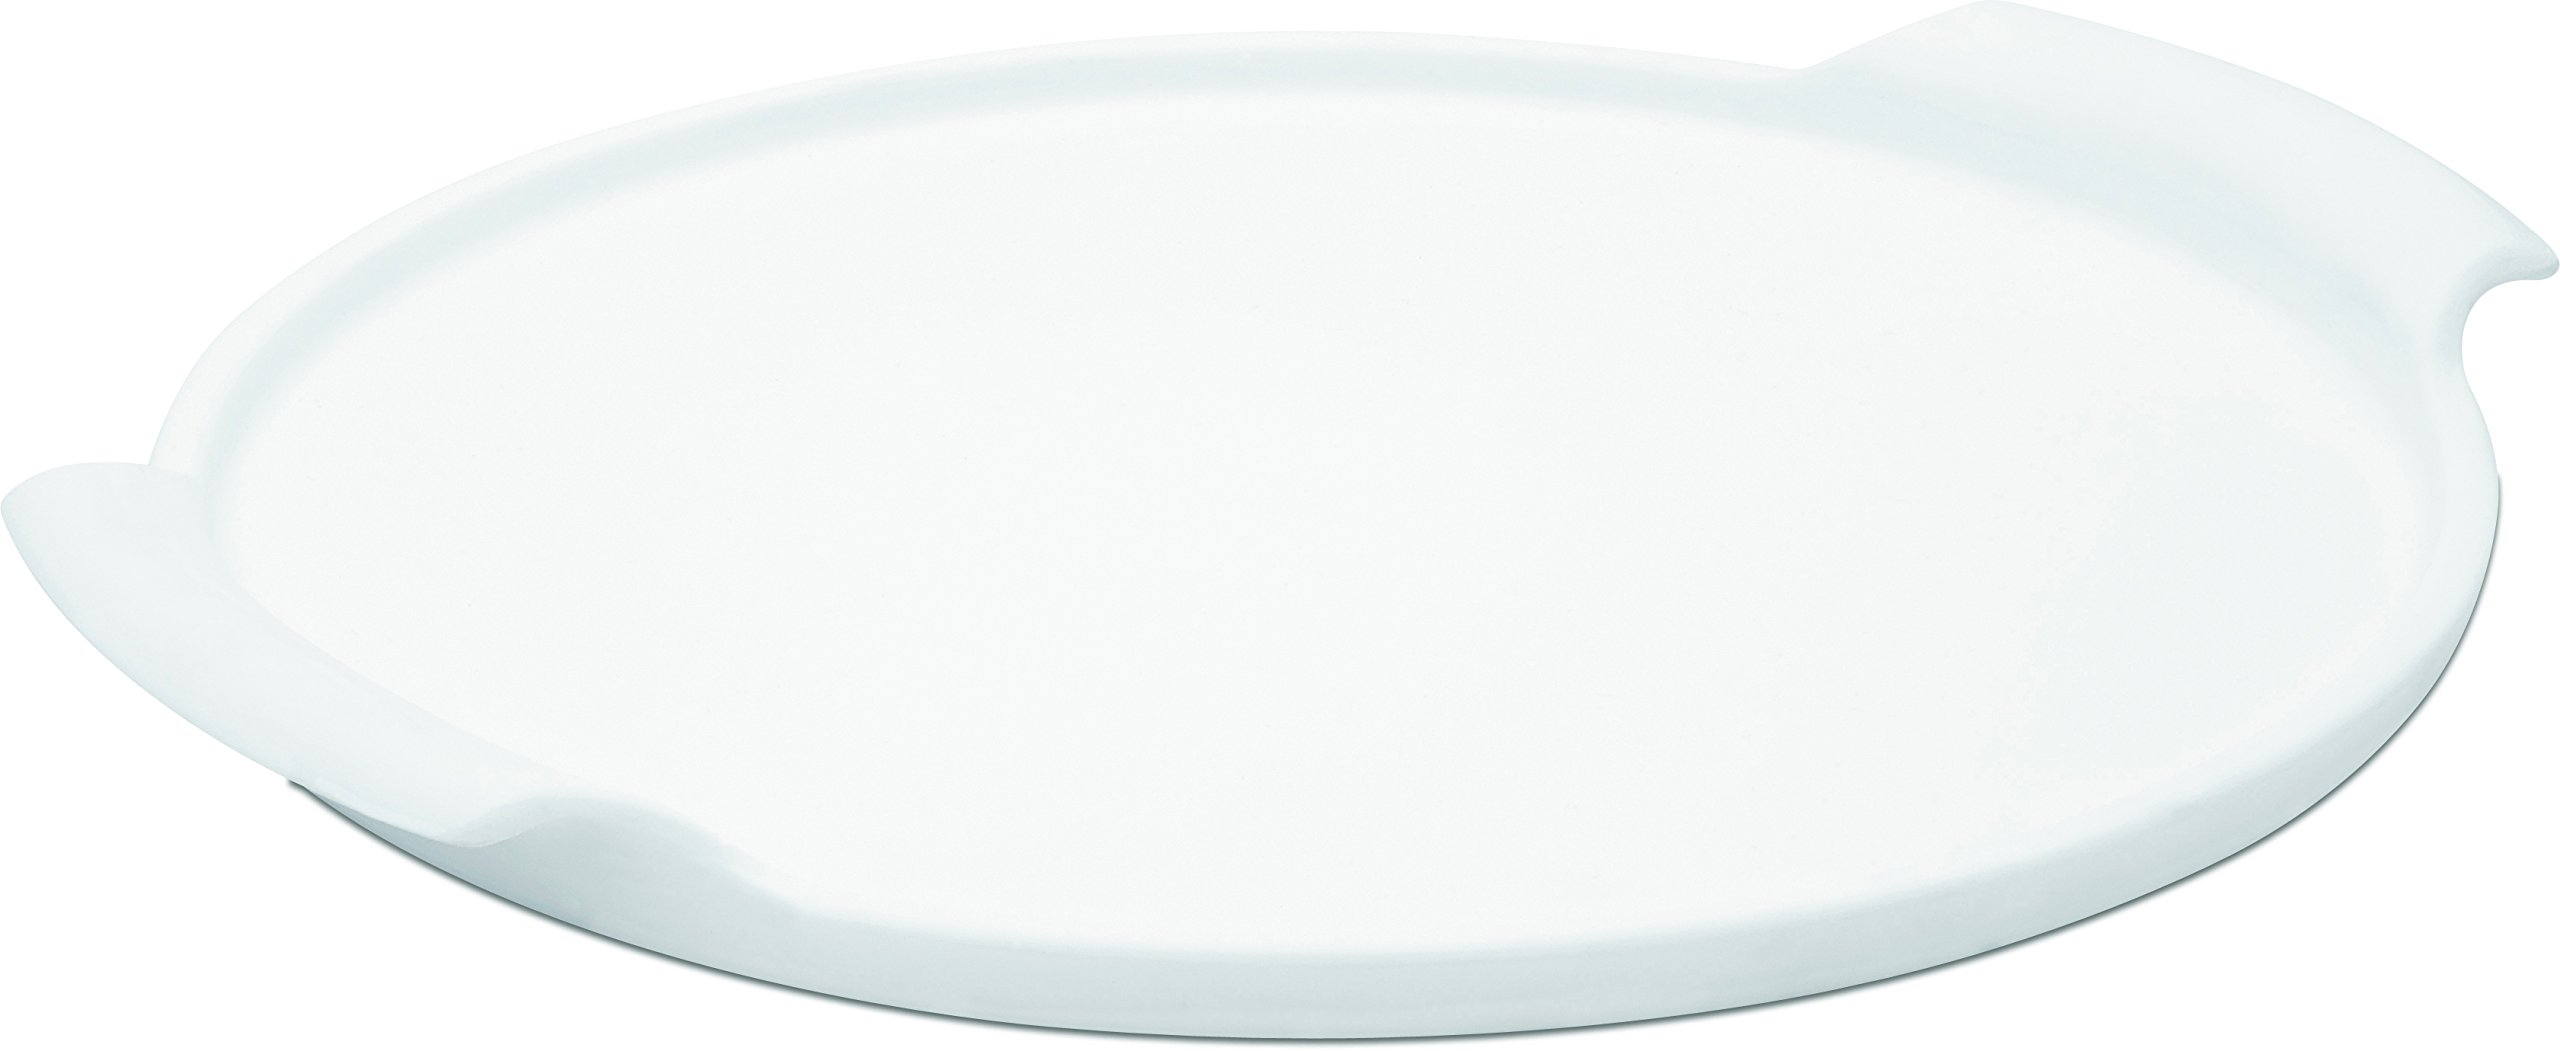 Oxford 7891361719679 Porcelain Pizza Stone with Handle, White by Oxford